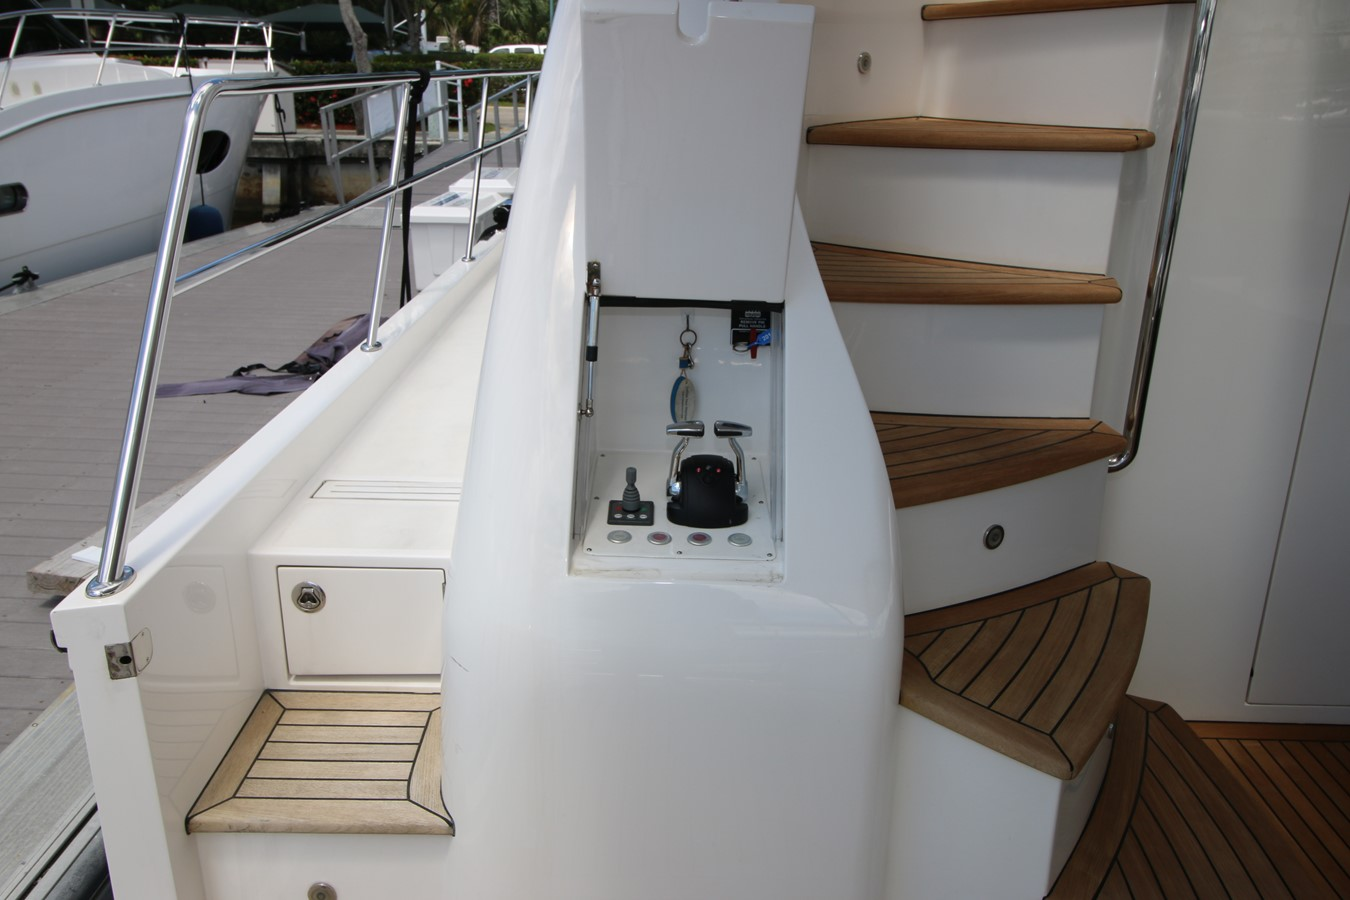 AFT DECK CONTROLS 2014 HORIZON PC60 SKYLOUNGE Catamaran 2547232